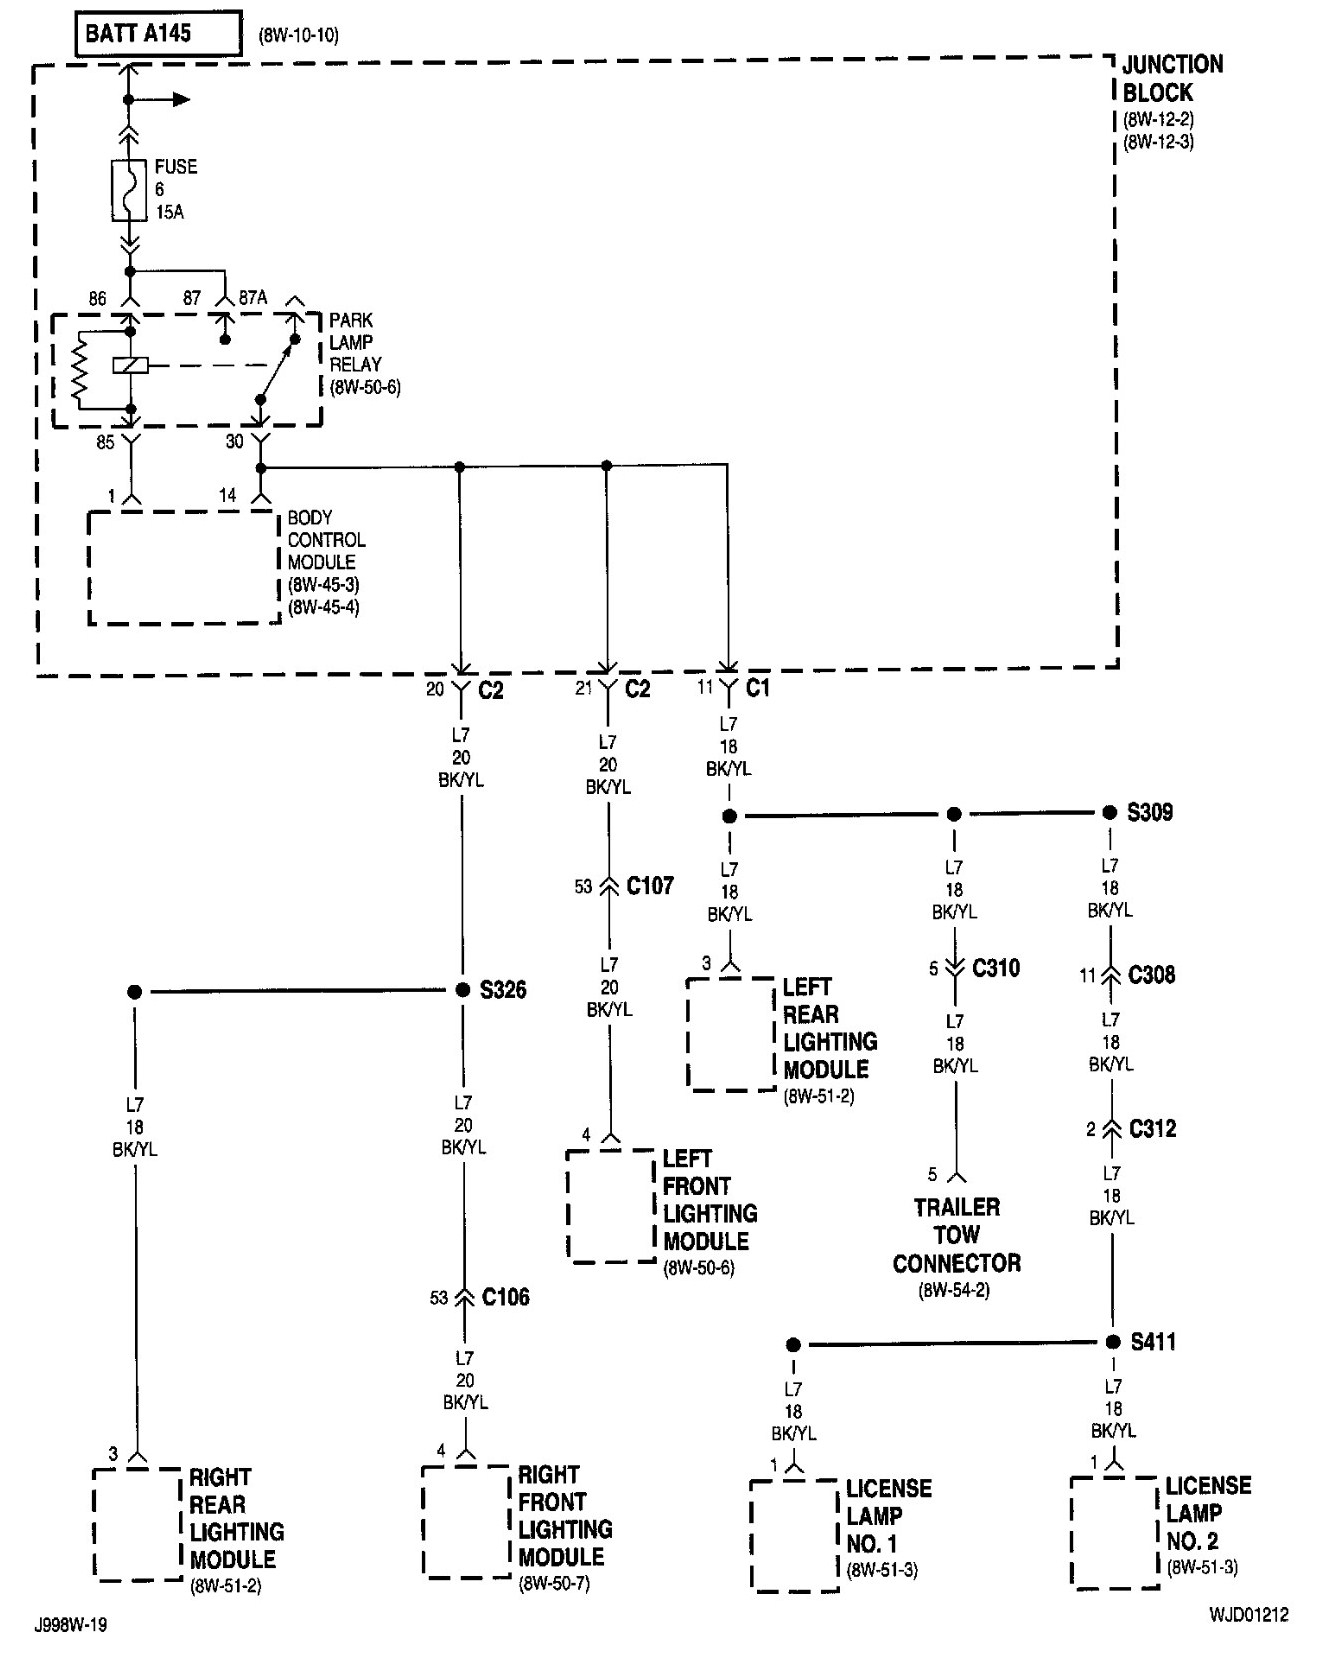 2004 Jeep Trailer Wiring Diagram 5 Wire - Wiring Data Diagram - Jeep Xj Trailer Wiring Diagram